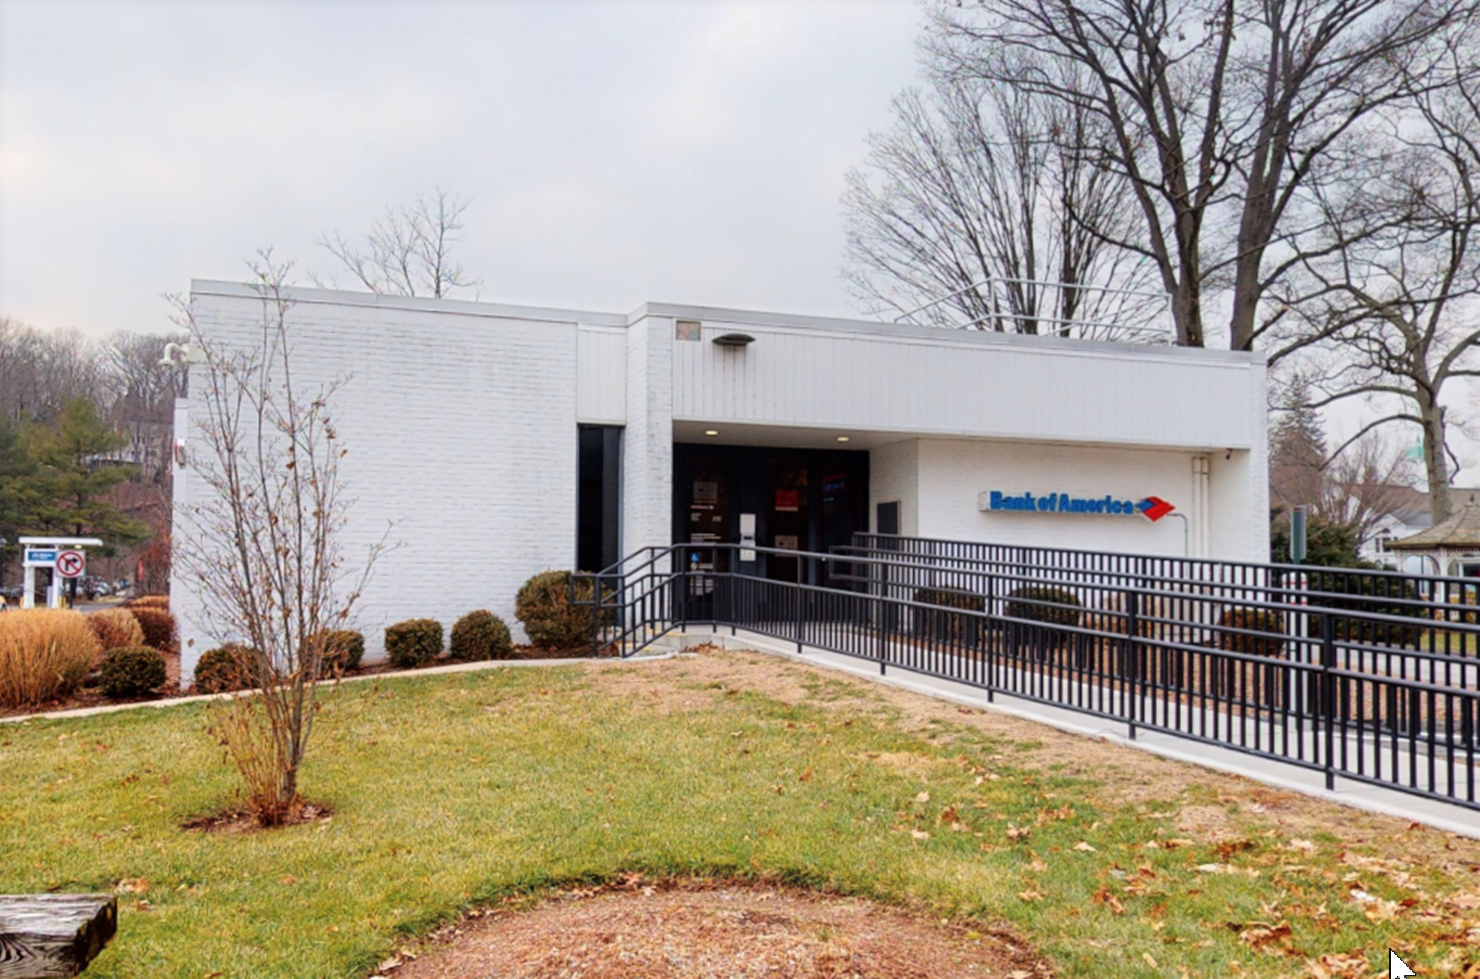 Bank of America financial center with drive-thru ATM | 117 Old Ridgefield Rd, Wilton, CT 06897